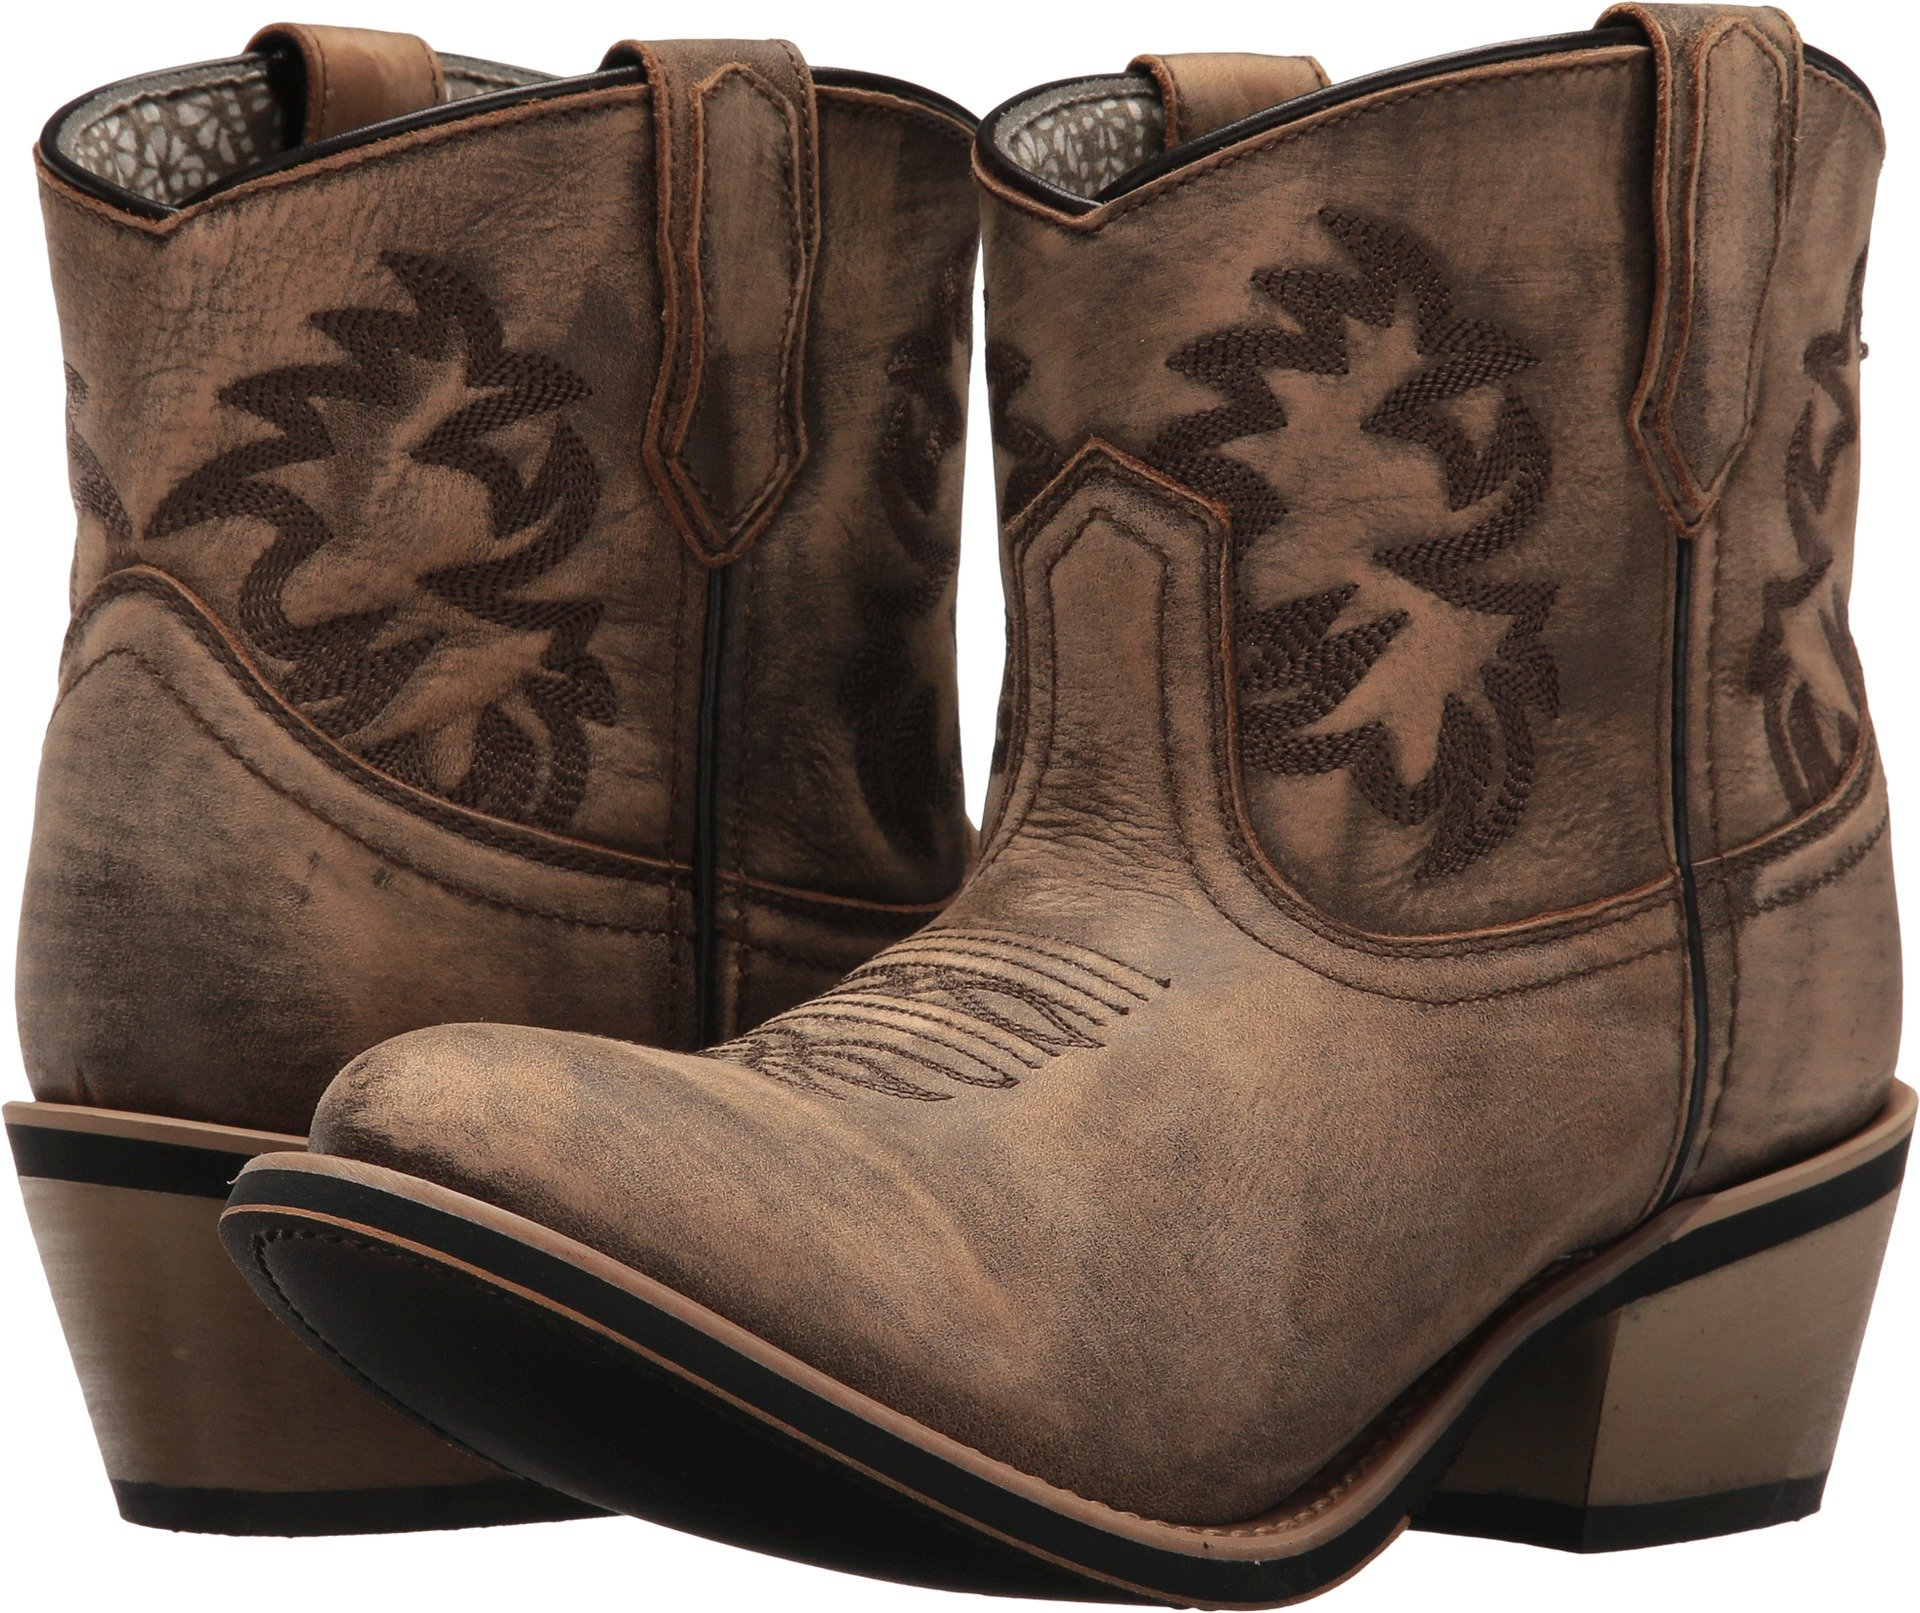 Laredo Western Boots Womens Sapphyre Round Composition 6.5 M Tan 51028